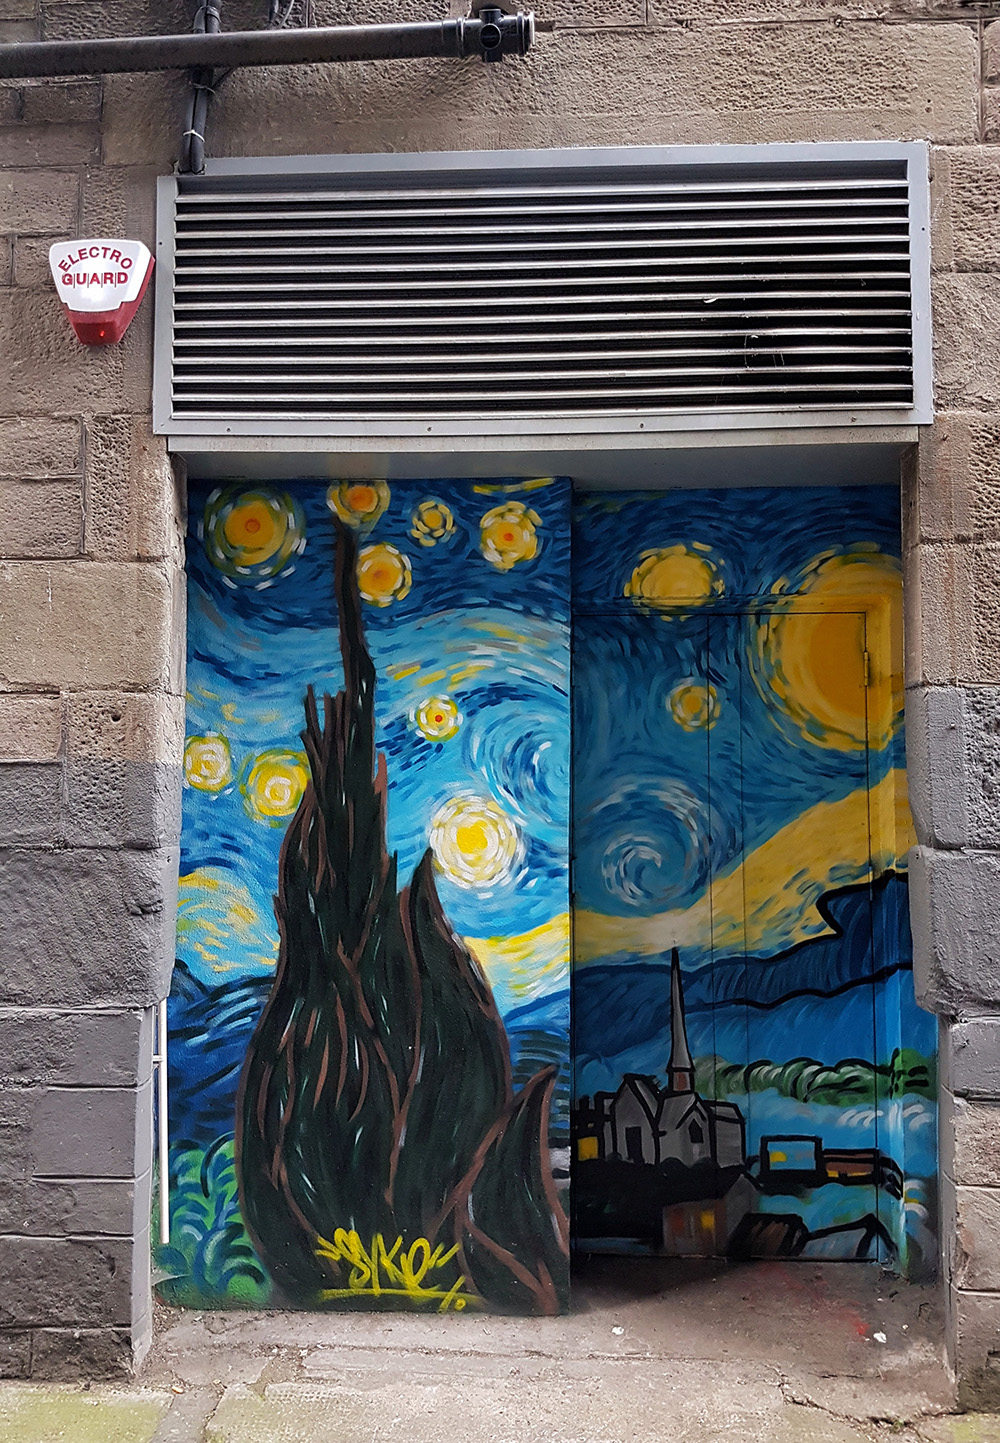 A painted doorway in an alley way. The doorway is painted with a tribute to van Gogh's Starry Night.